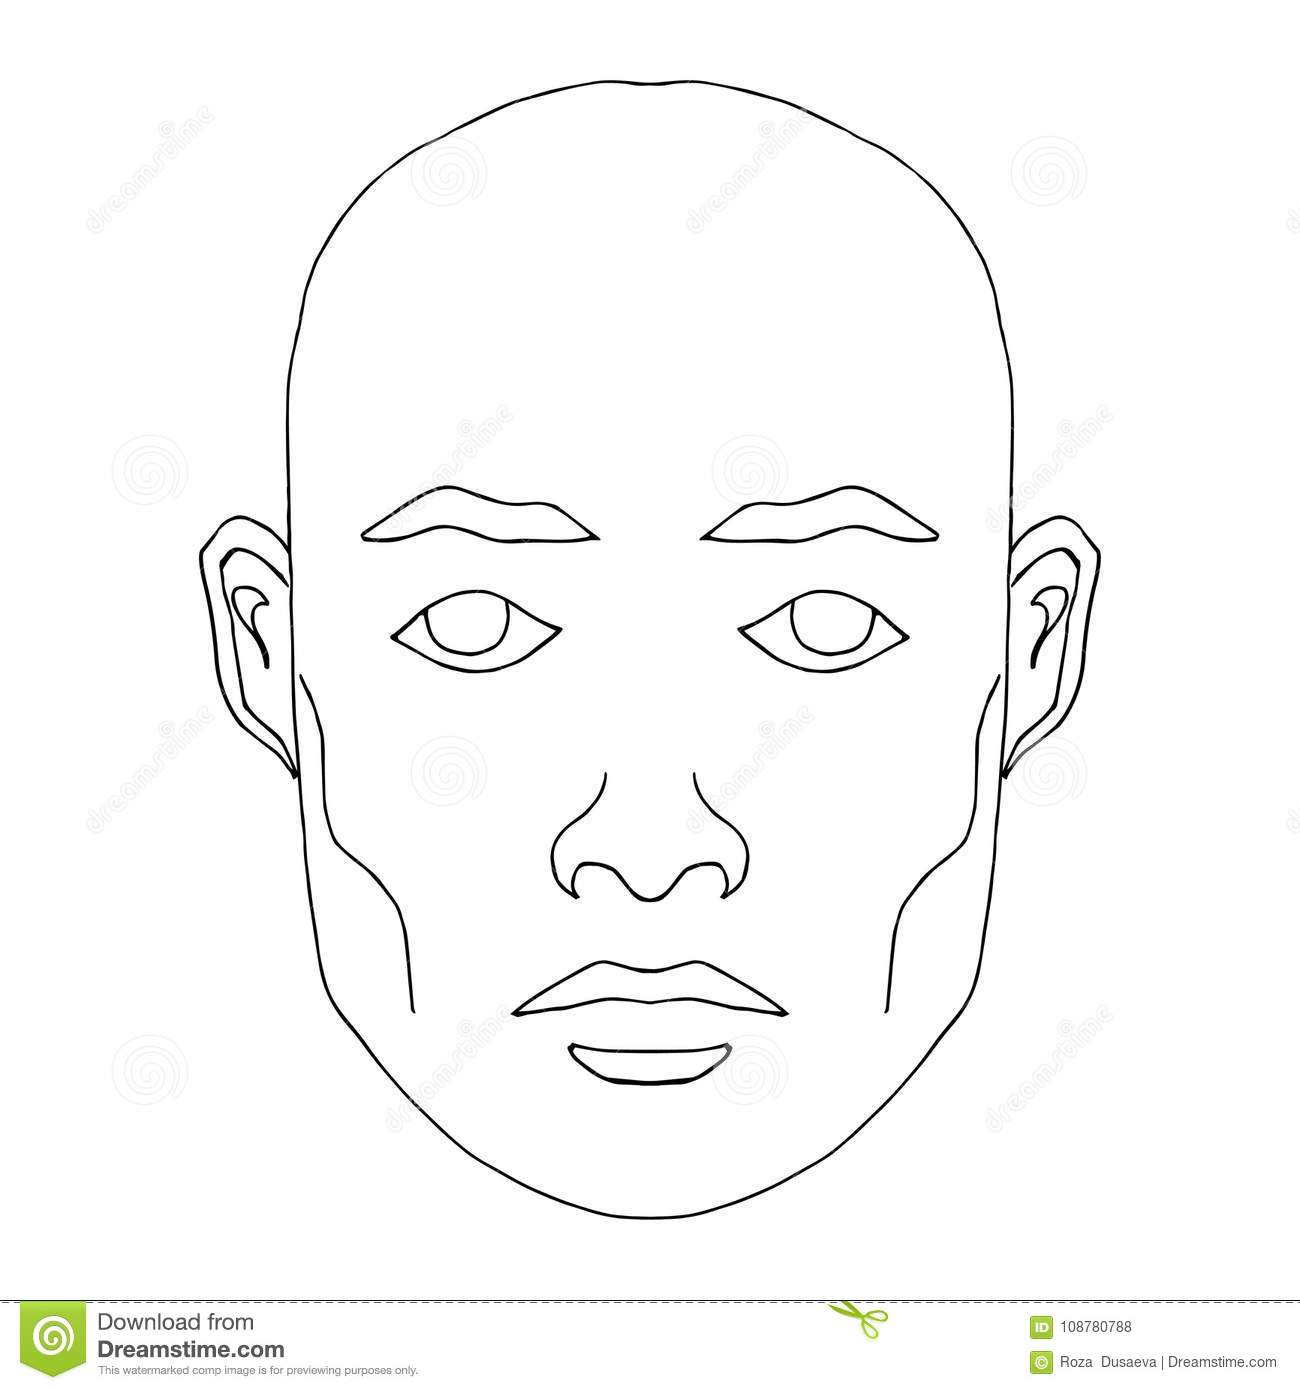 Man face hand drawn fashion model clip art of young man with blank expression looking at camera easy editable illustration isolated on white background